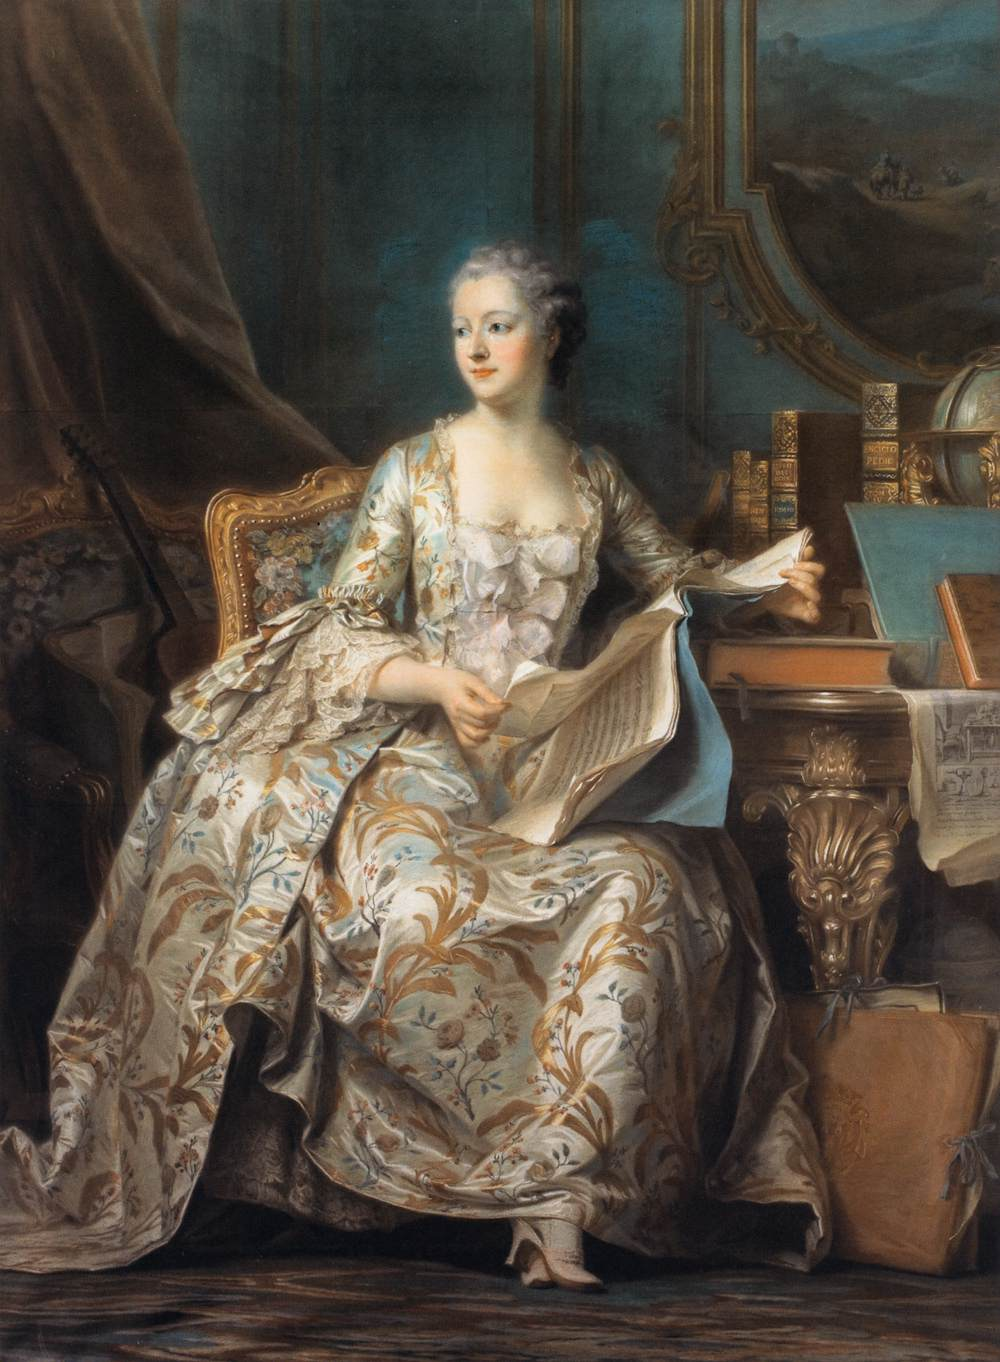 Madame de Pompadour, the queen without a crown, in a pastel by Maurice Quentin de la Tour (1755).